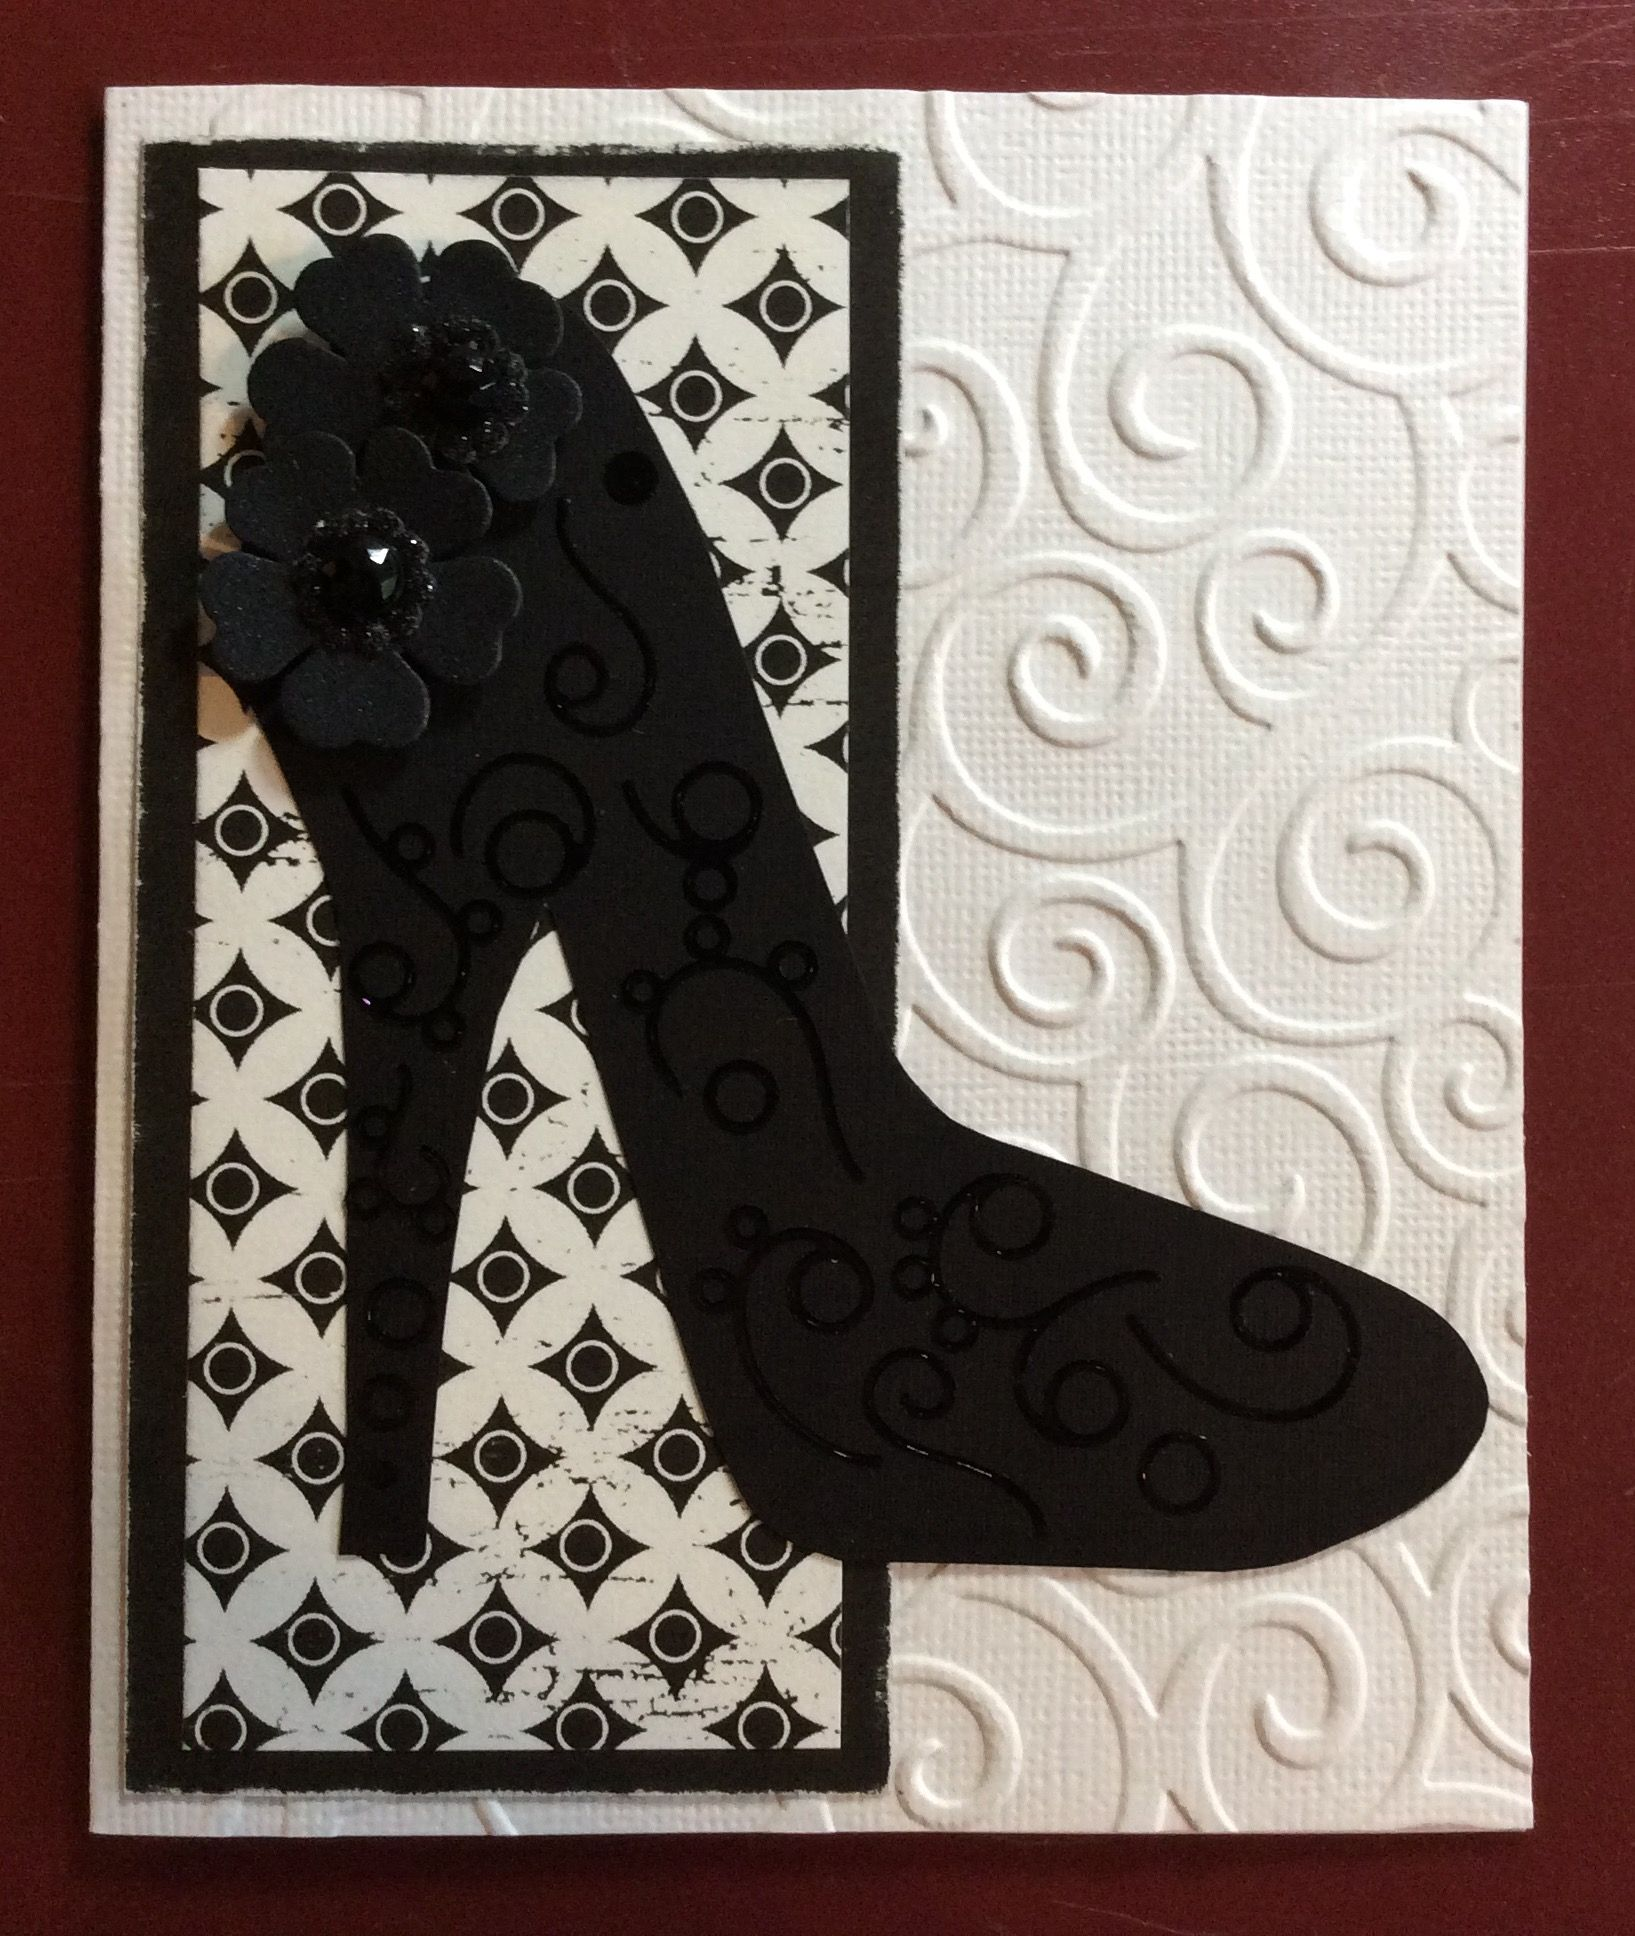 Stiletto Shoe Template Card Two I Love This One Handmade Birthday Cards Shoe Template Cards